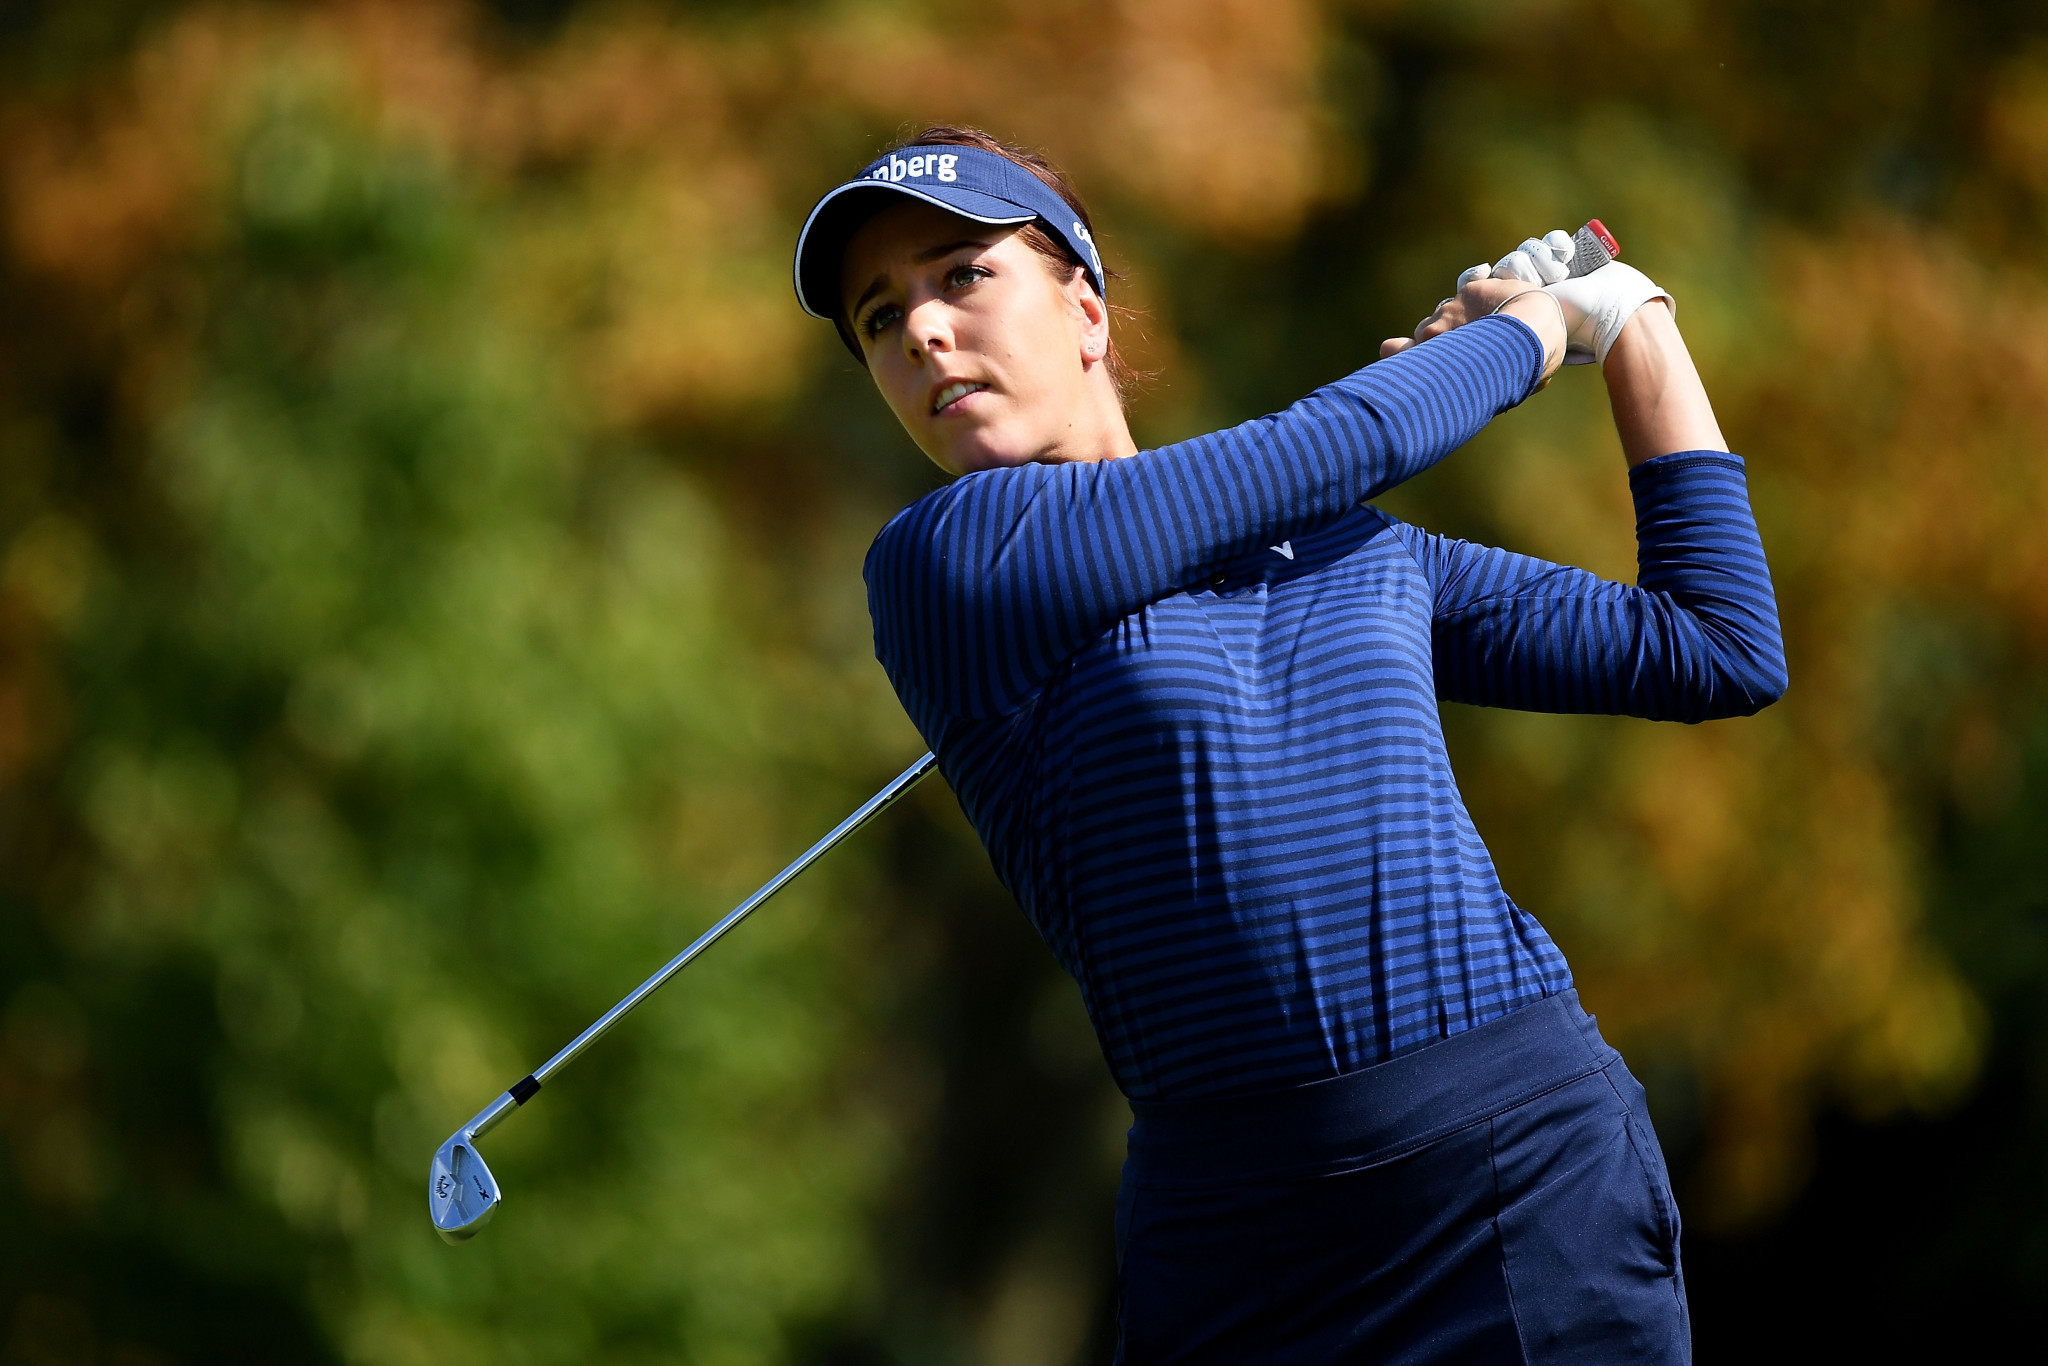 Georgia Hall will require all of her experience on the final day of the Solheim Cup ©Getty Images